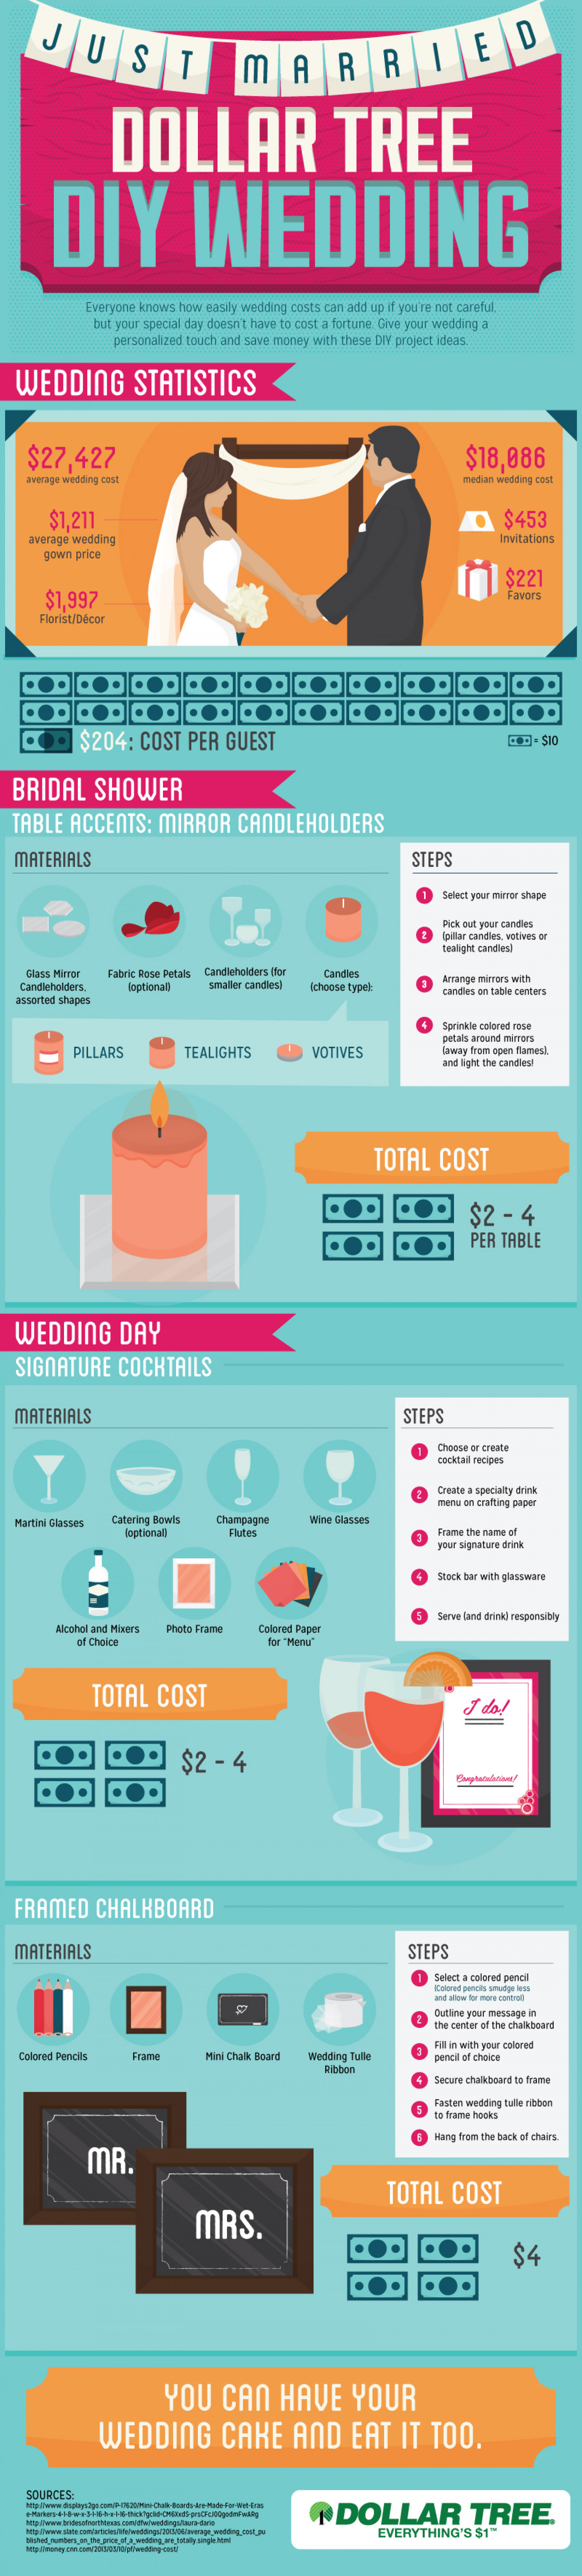 Dollar Tree DIY Wedding Infographic